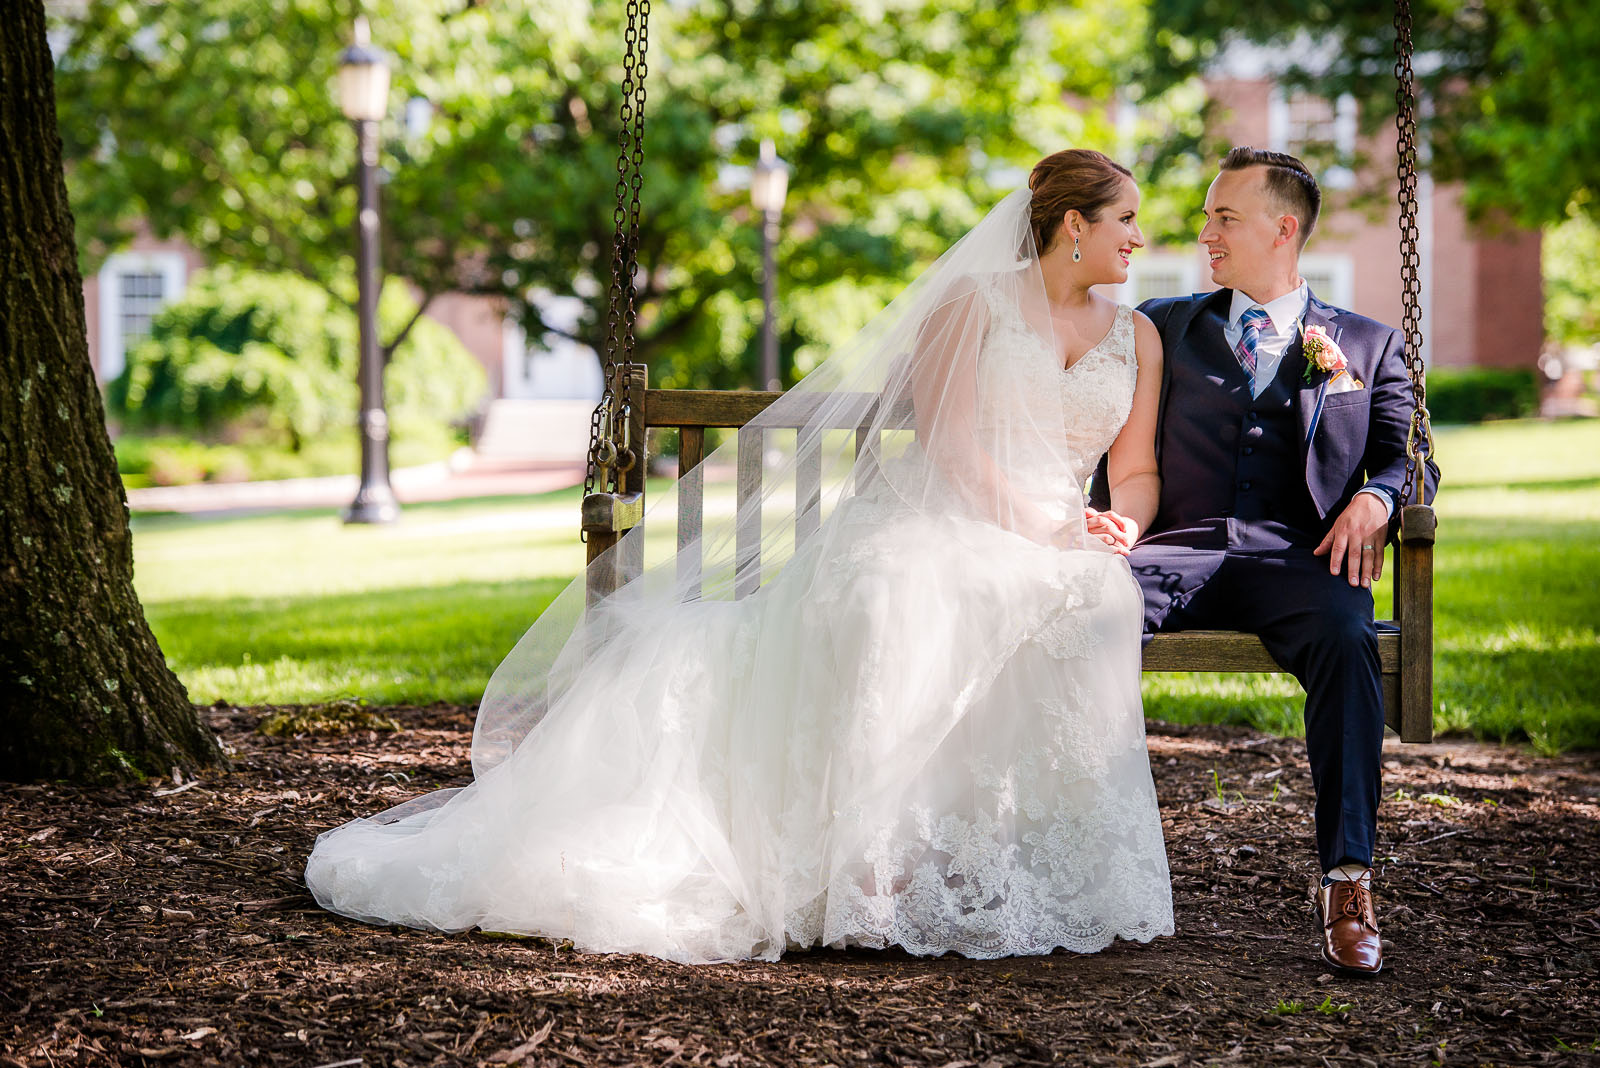 Eric_and_Christy_Photography_Blog_Wedding_Paige_Eric-37